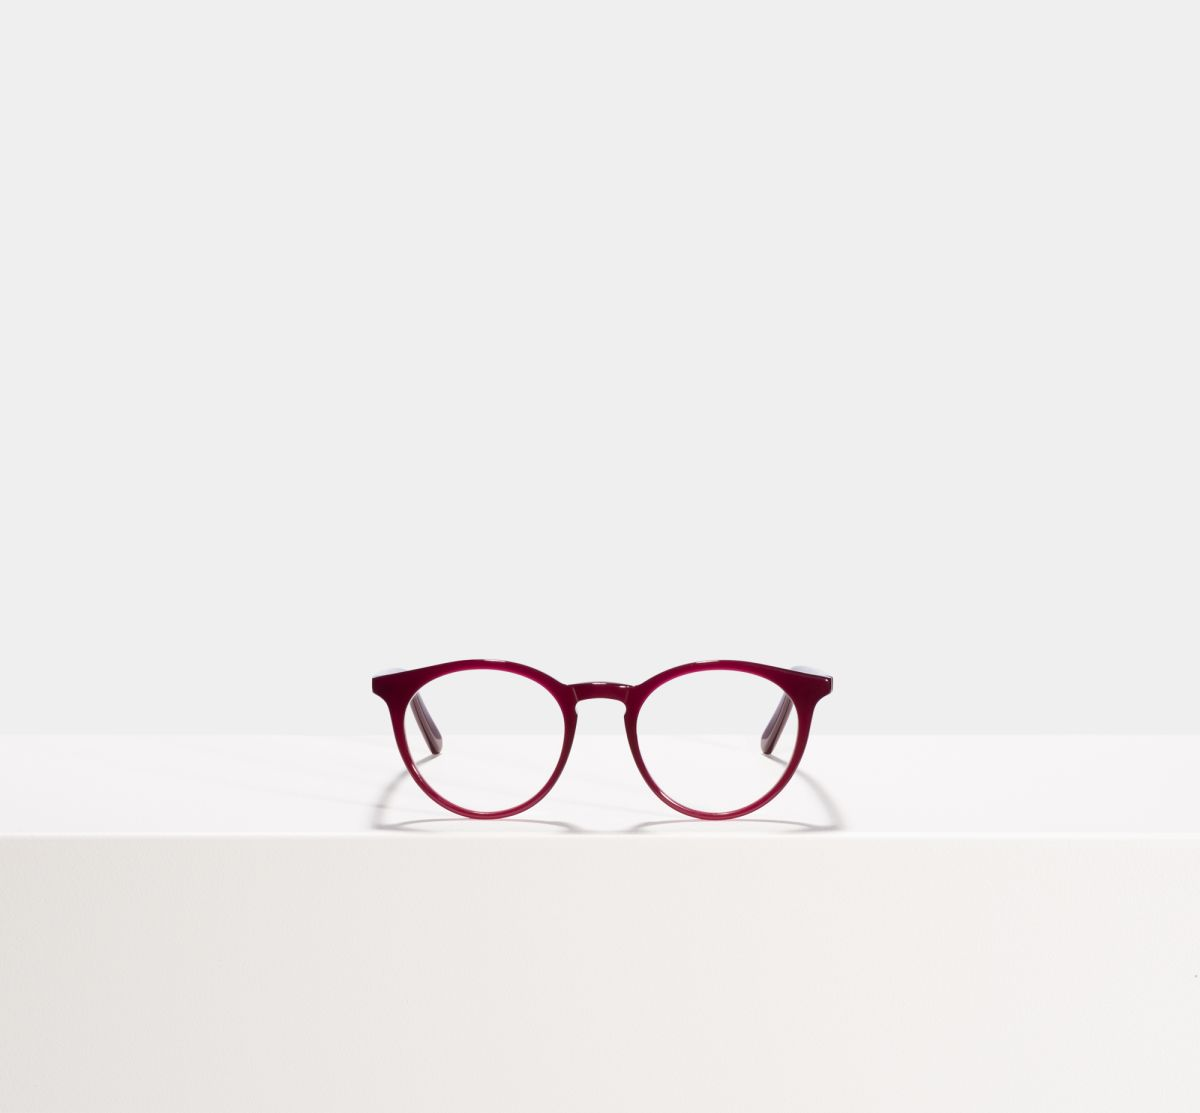 Easton round acetate glasses in Classy Burgundy by Ace & Tate